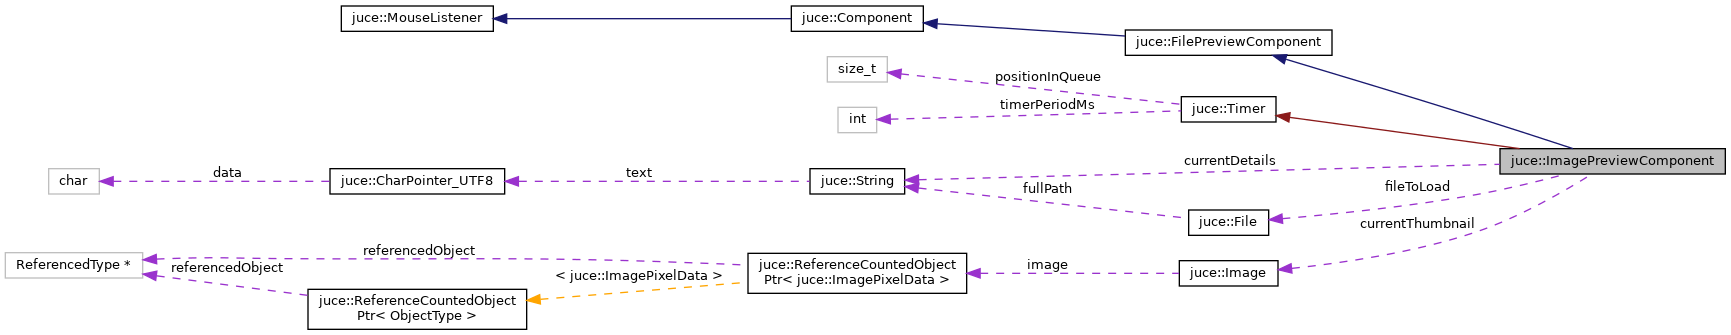 JUCE: juce::ImagePreviewComponent Class Reference